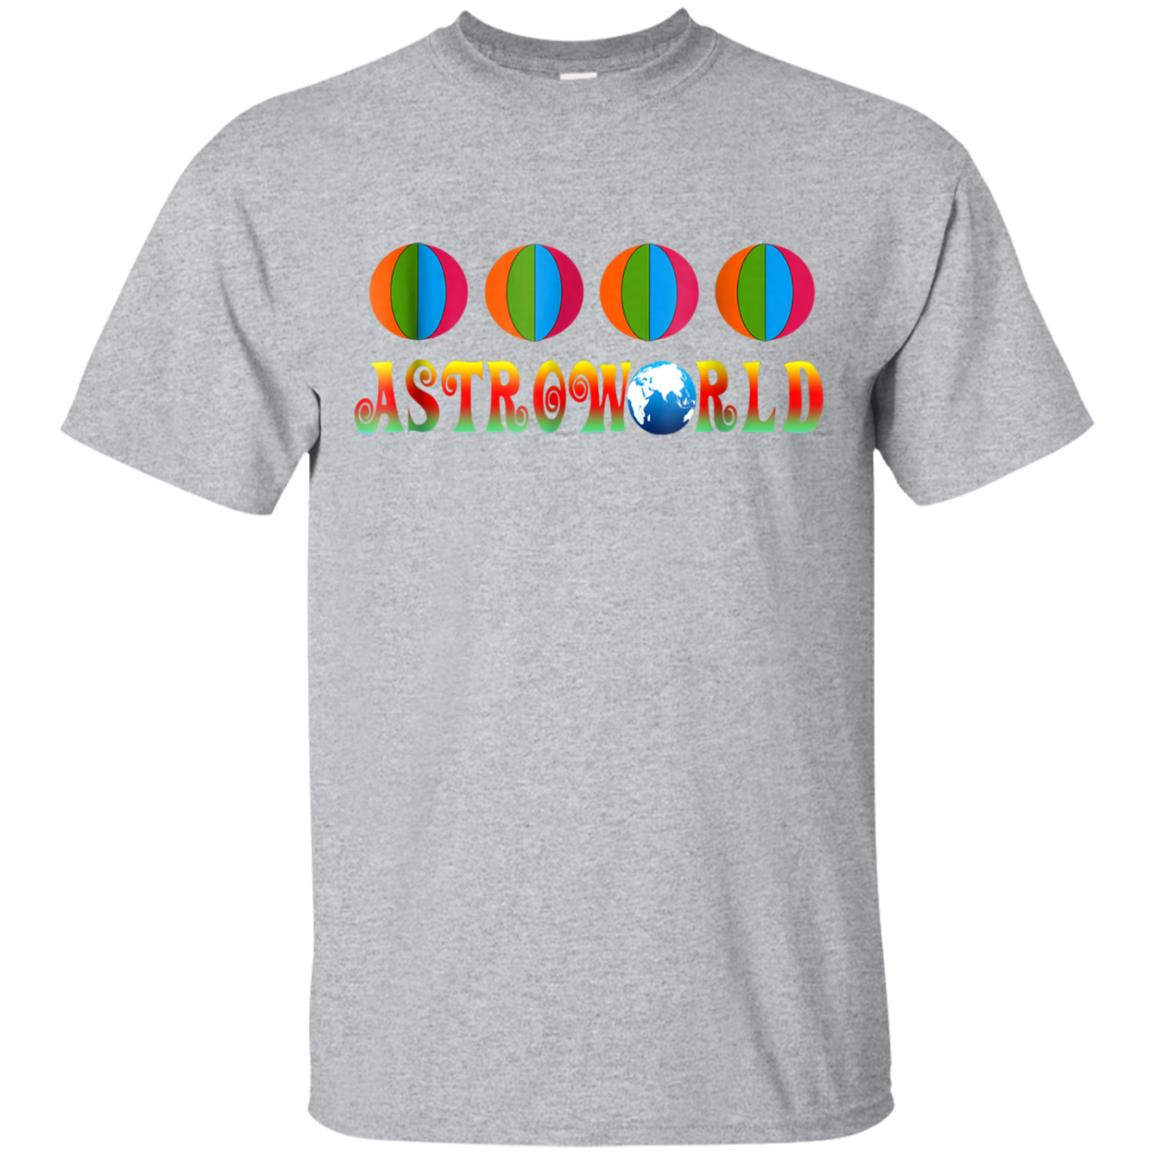 Astroworld Hot Store astroworld shirt 99promocode